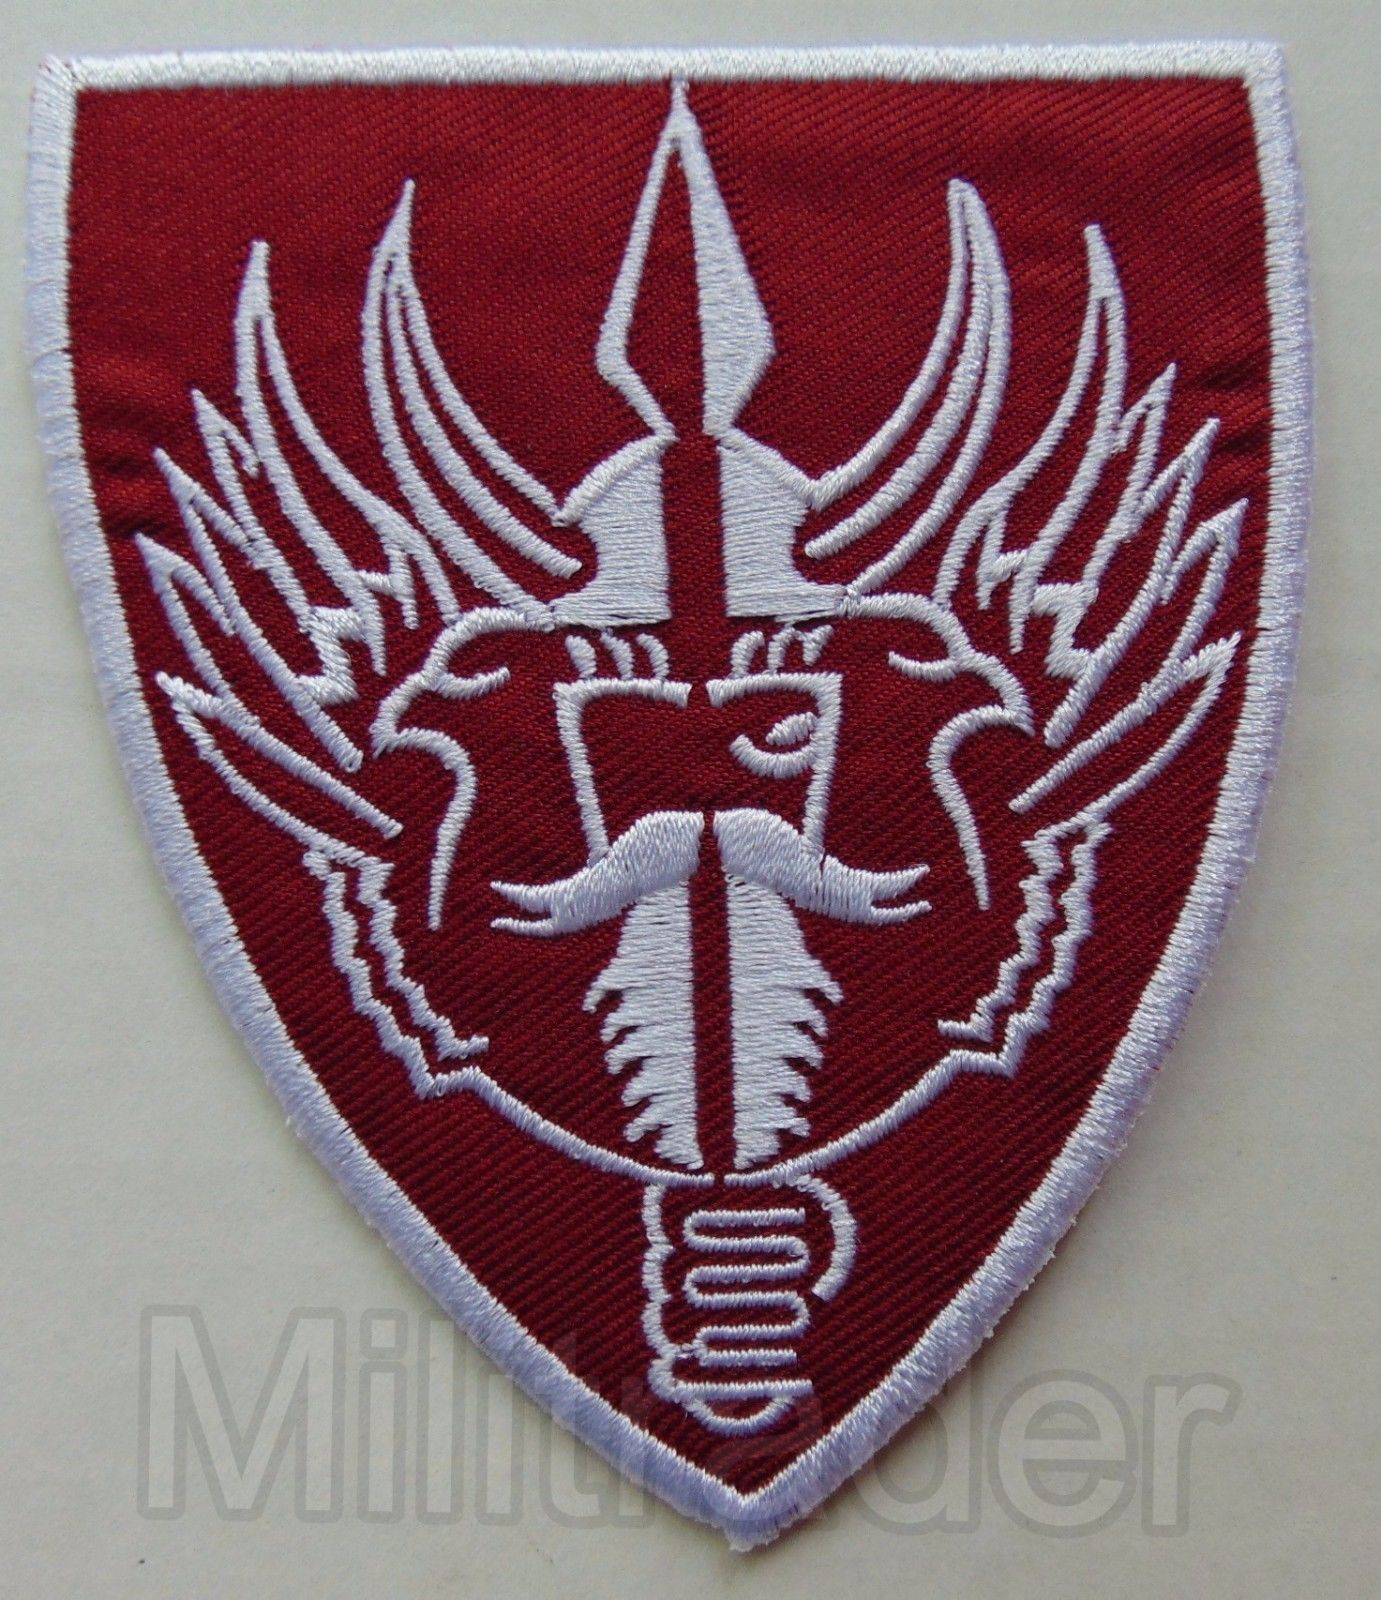 Norway Army Viking Ship Patch Norwegian Military